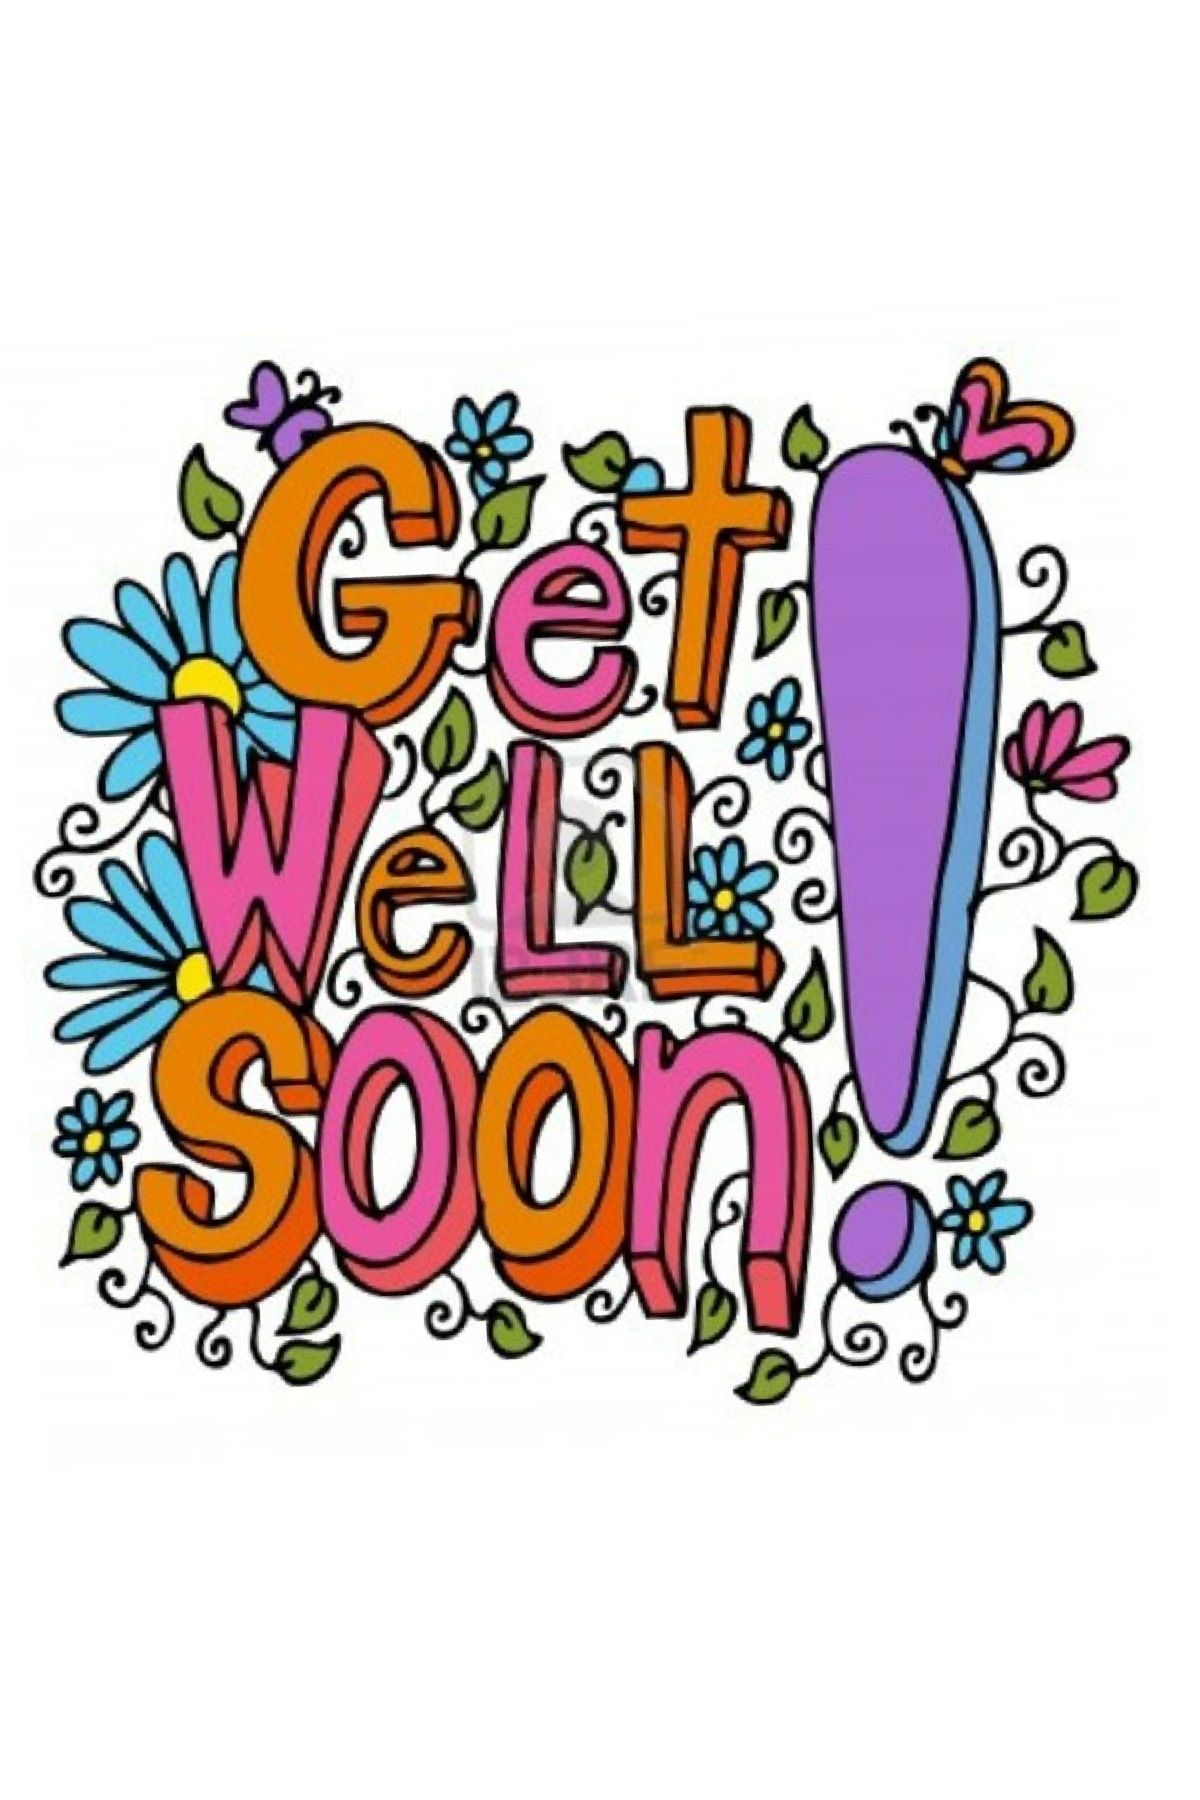 Medium Crop Of Get Well Soon Message